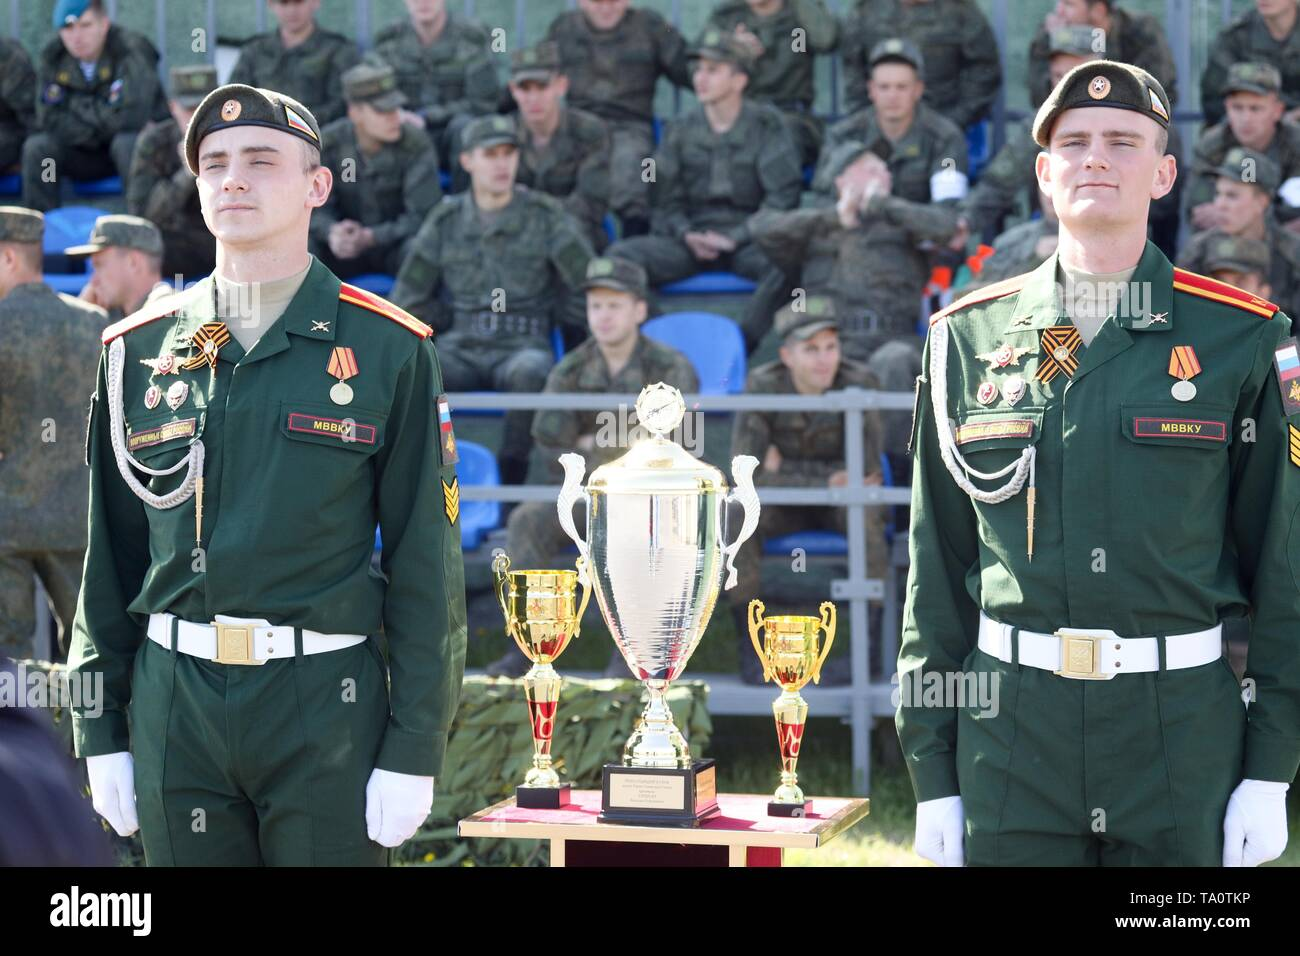 Russian Armed Forces Stock Photos & Russian Armed Forces